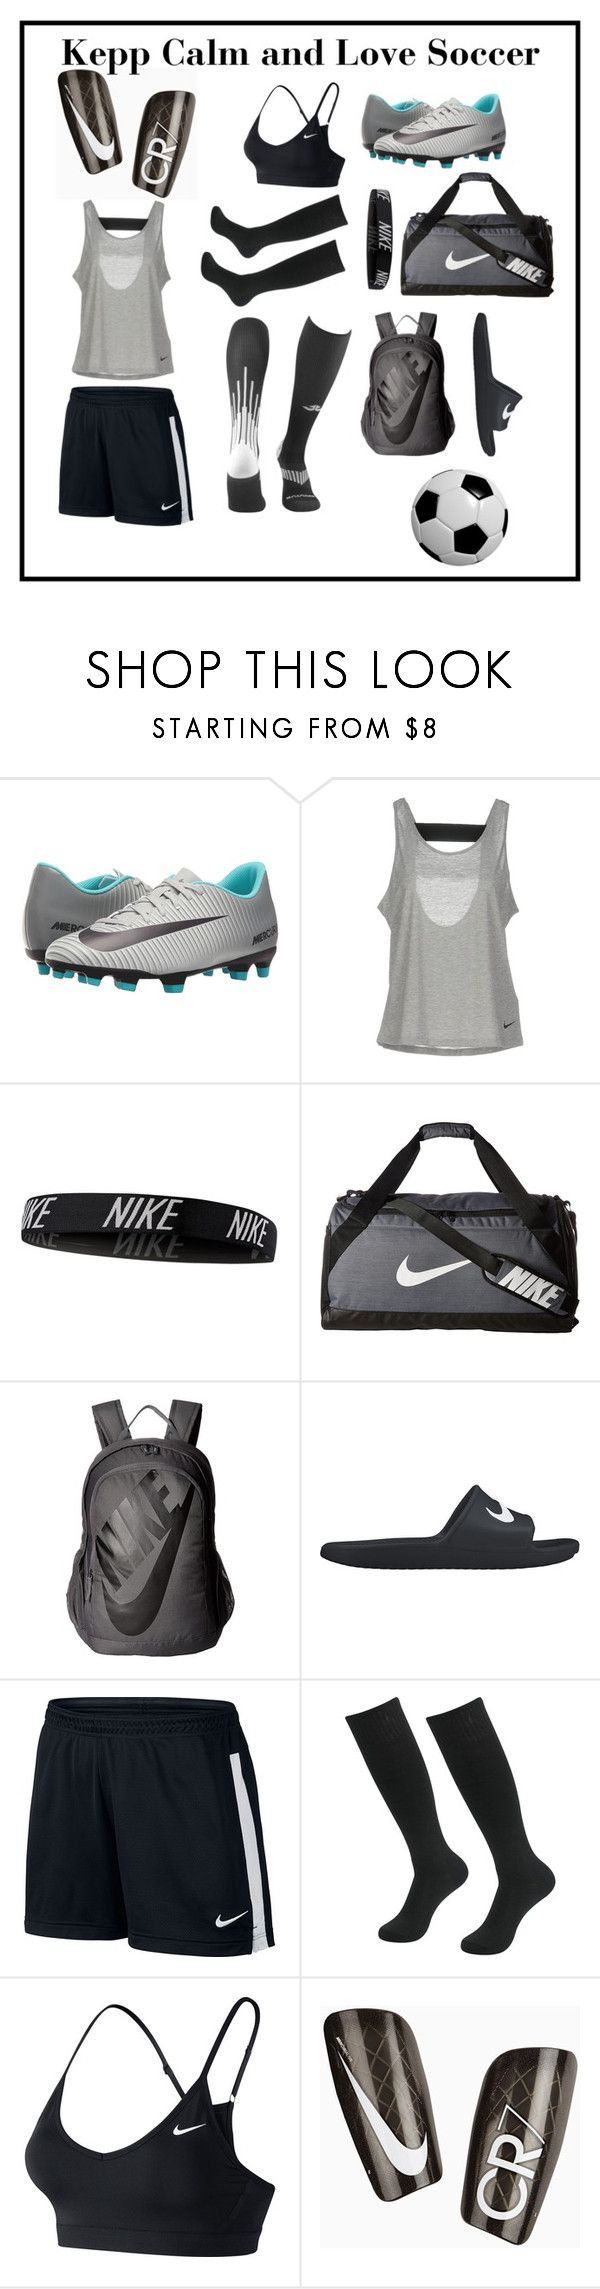 """""""Keep Calm and Love Soccer"""" by berthtriks ❤ liked on Polyvore featuring NIKE"""